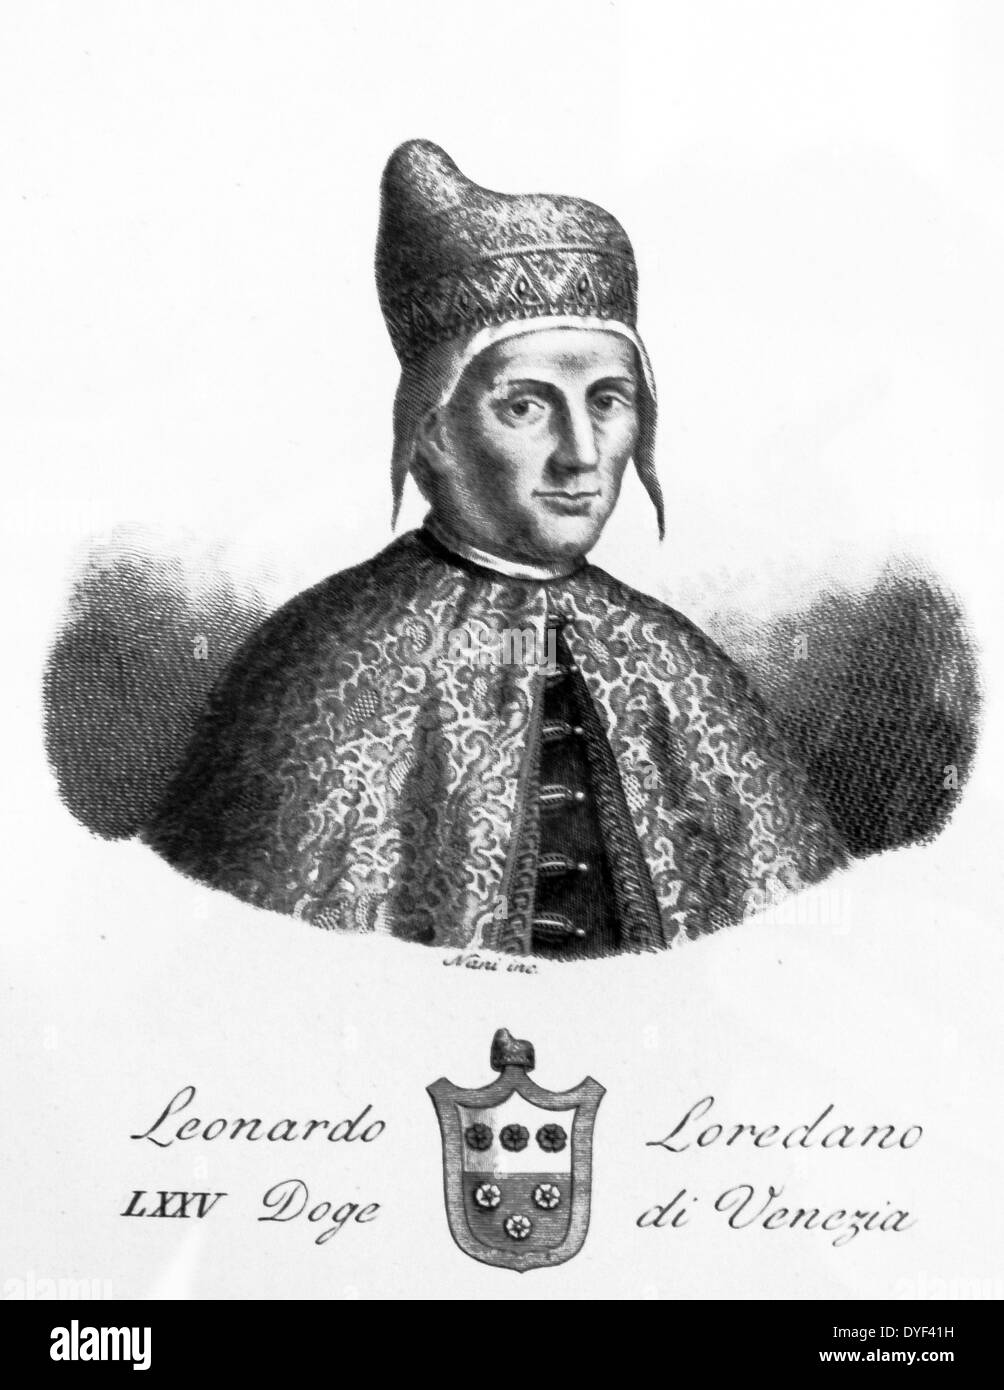 Portrait of Leonardo Loredan. - Stock Image